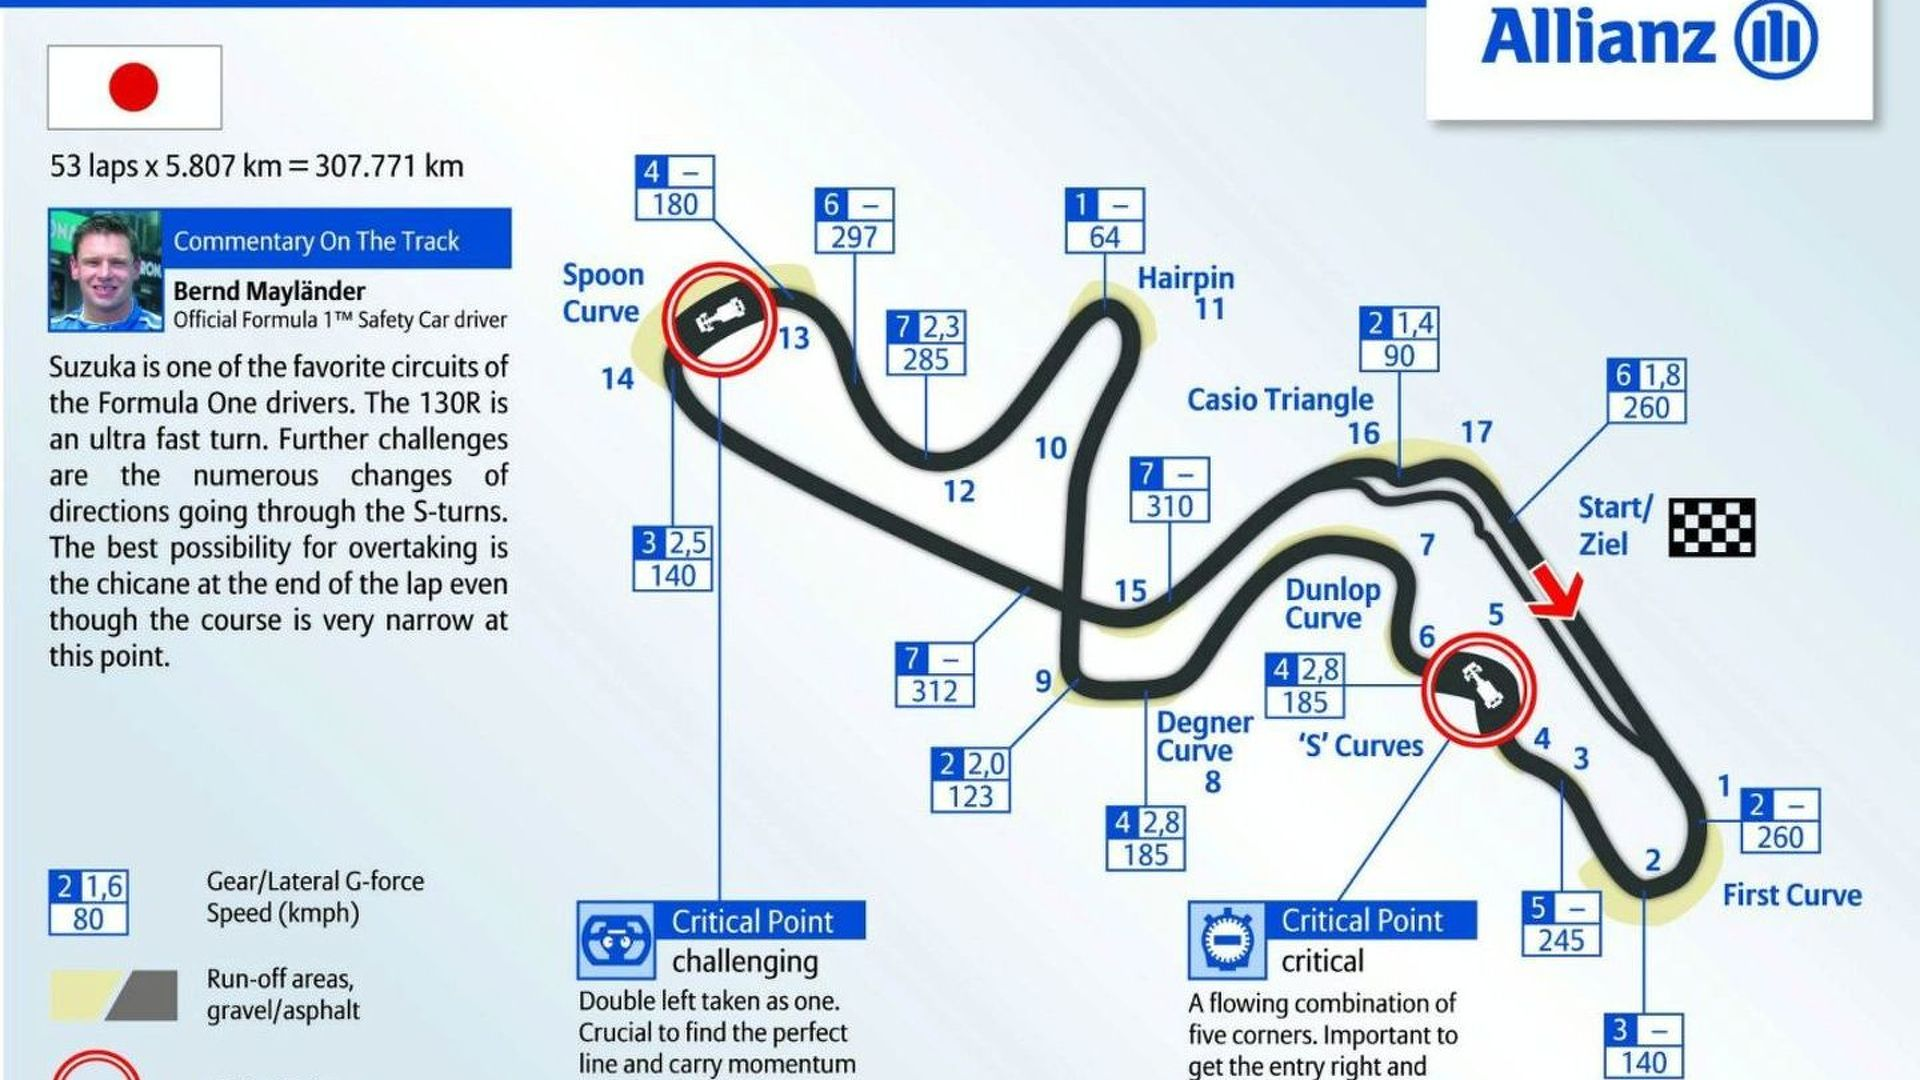 Lots of changes at Suzuka since 2006